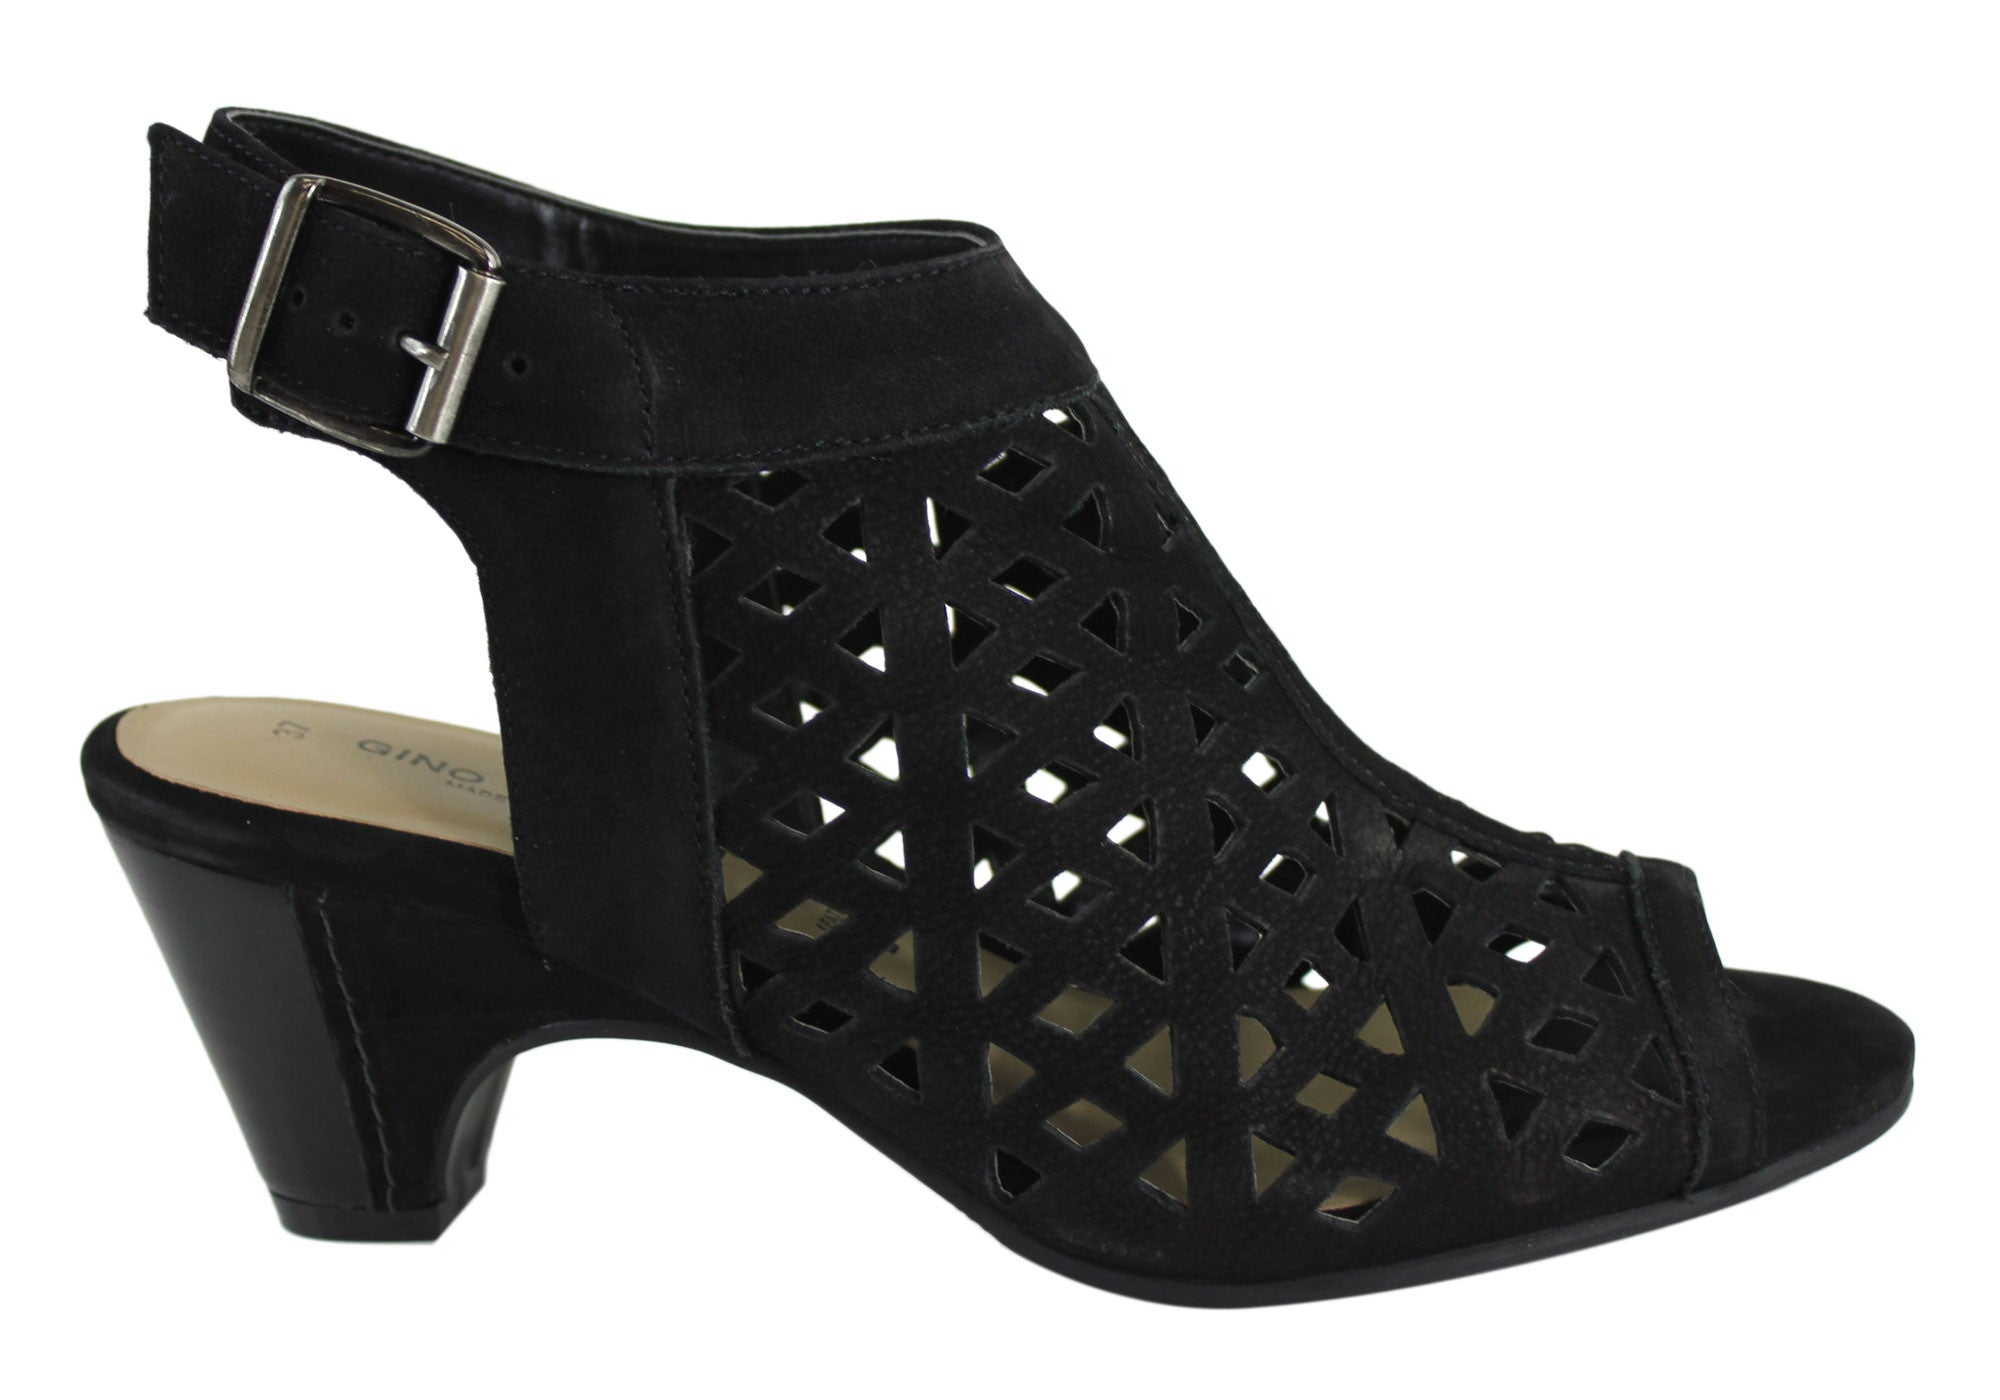 c87edeae4e1 Gino Ventori Fever Womens Leather Mid Heel Sandals Made In Brazil ...